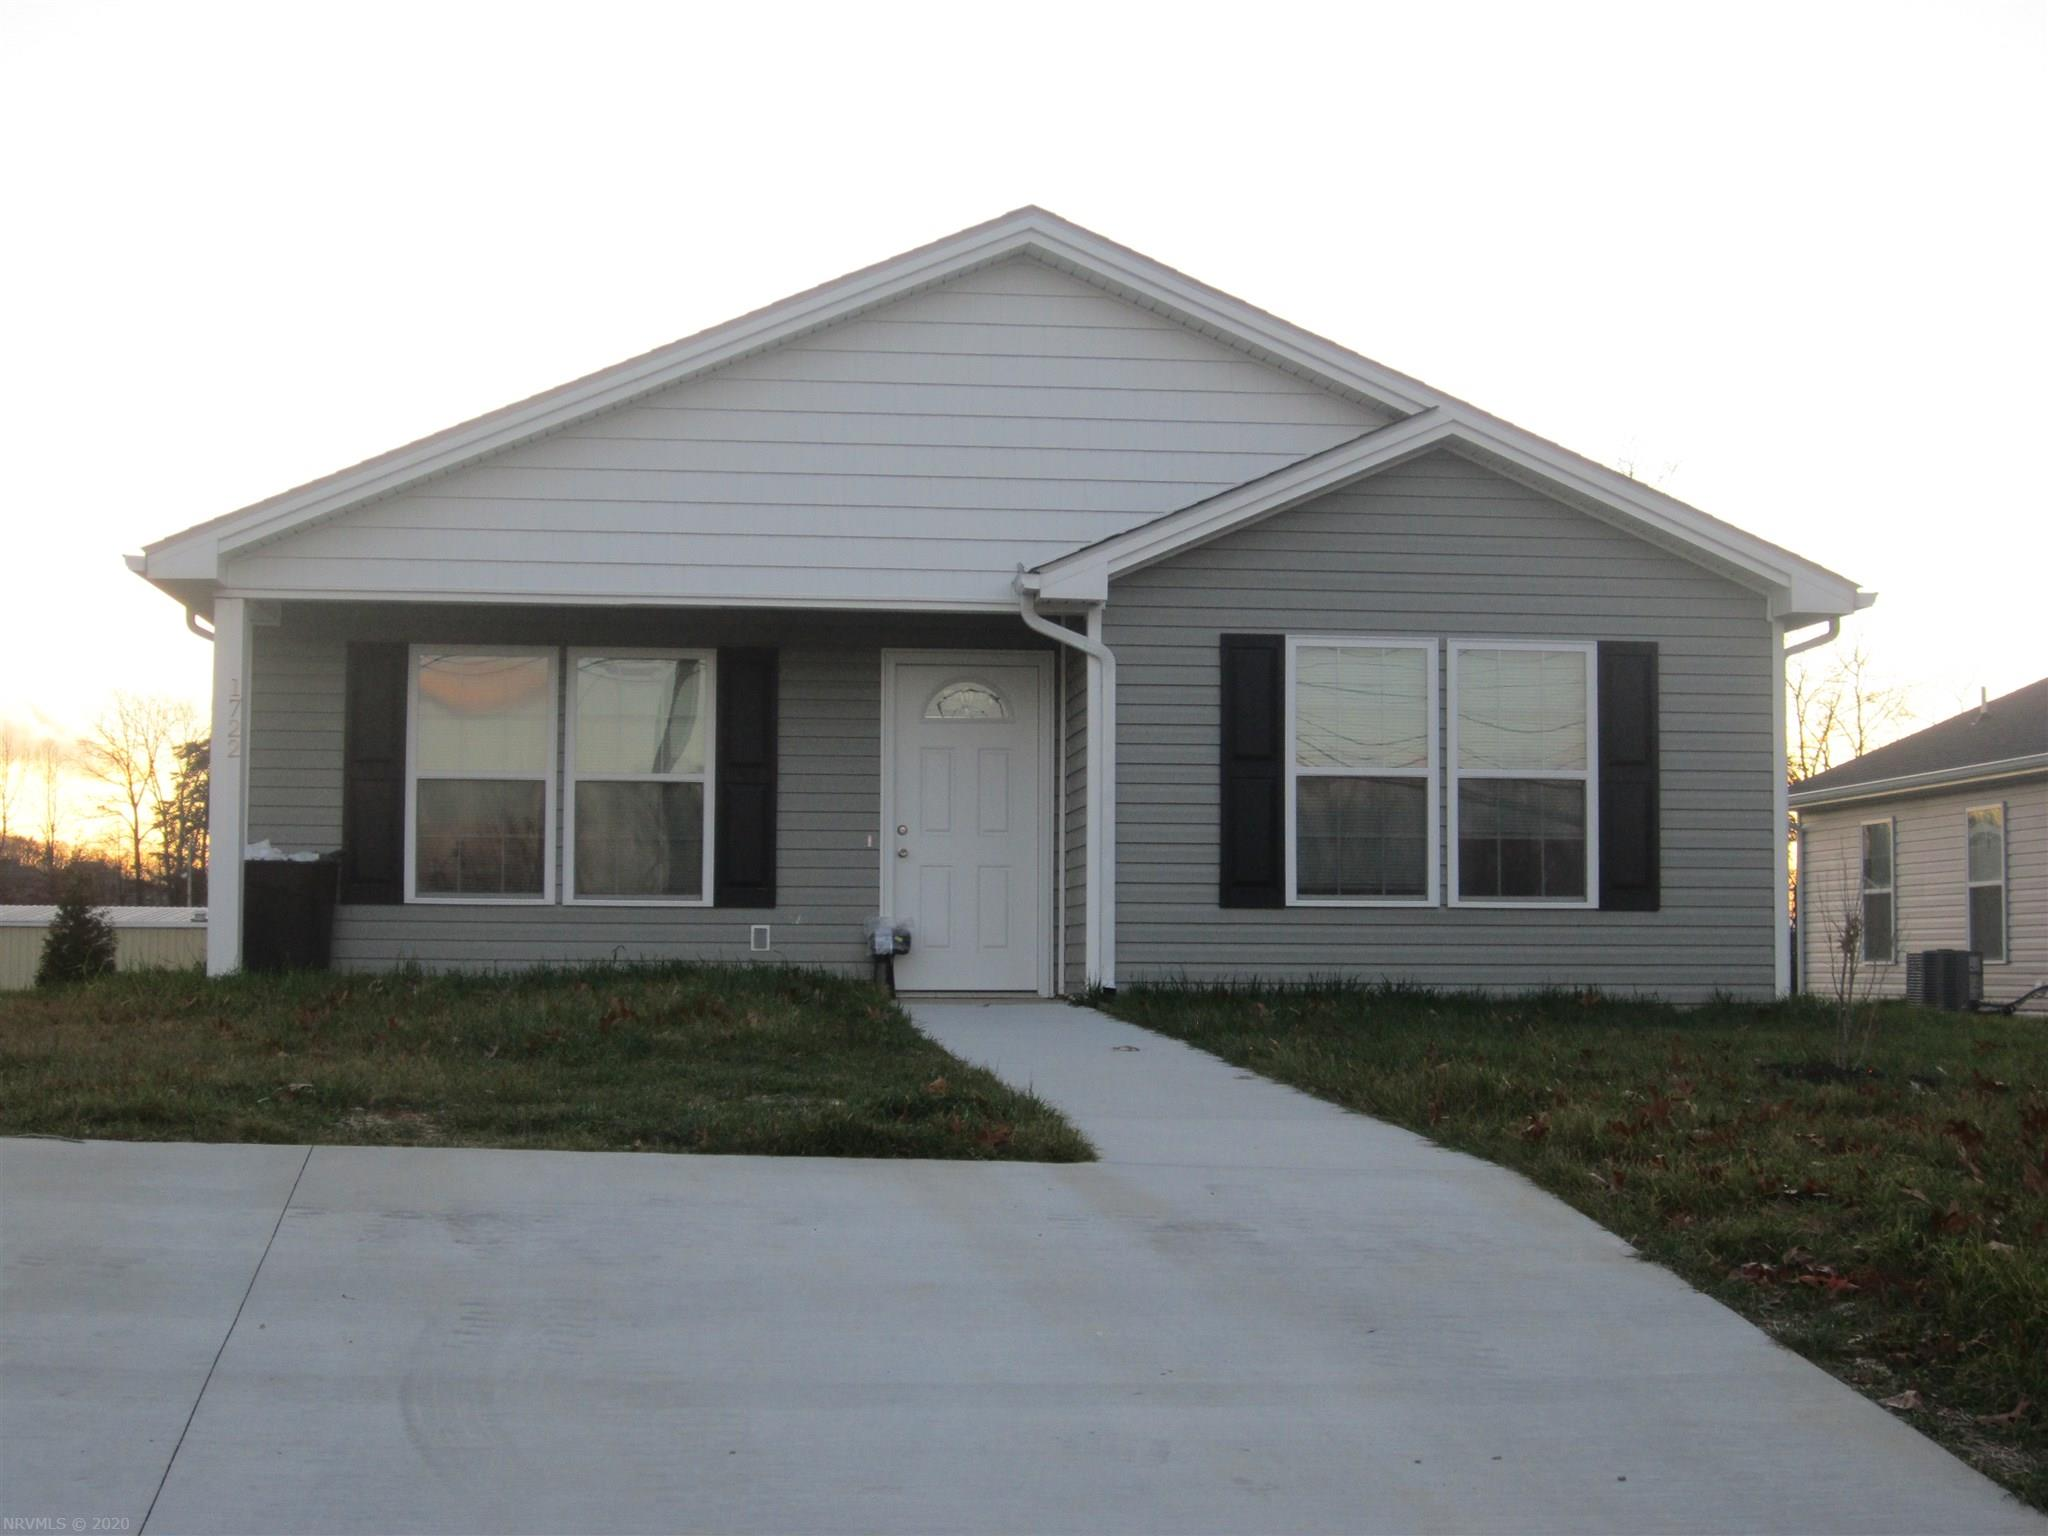 New Construction, 3 Bedroom 2 Bath Home. This Home offers an open Floor Plan and 1,500 Square feet of Living space. This home has a Heat pump and a Concrete Driveway and covered front Porch. There is also a Private Deck around Back.